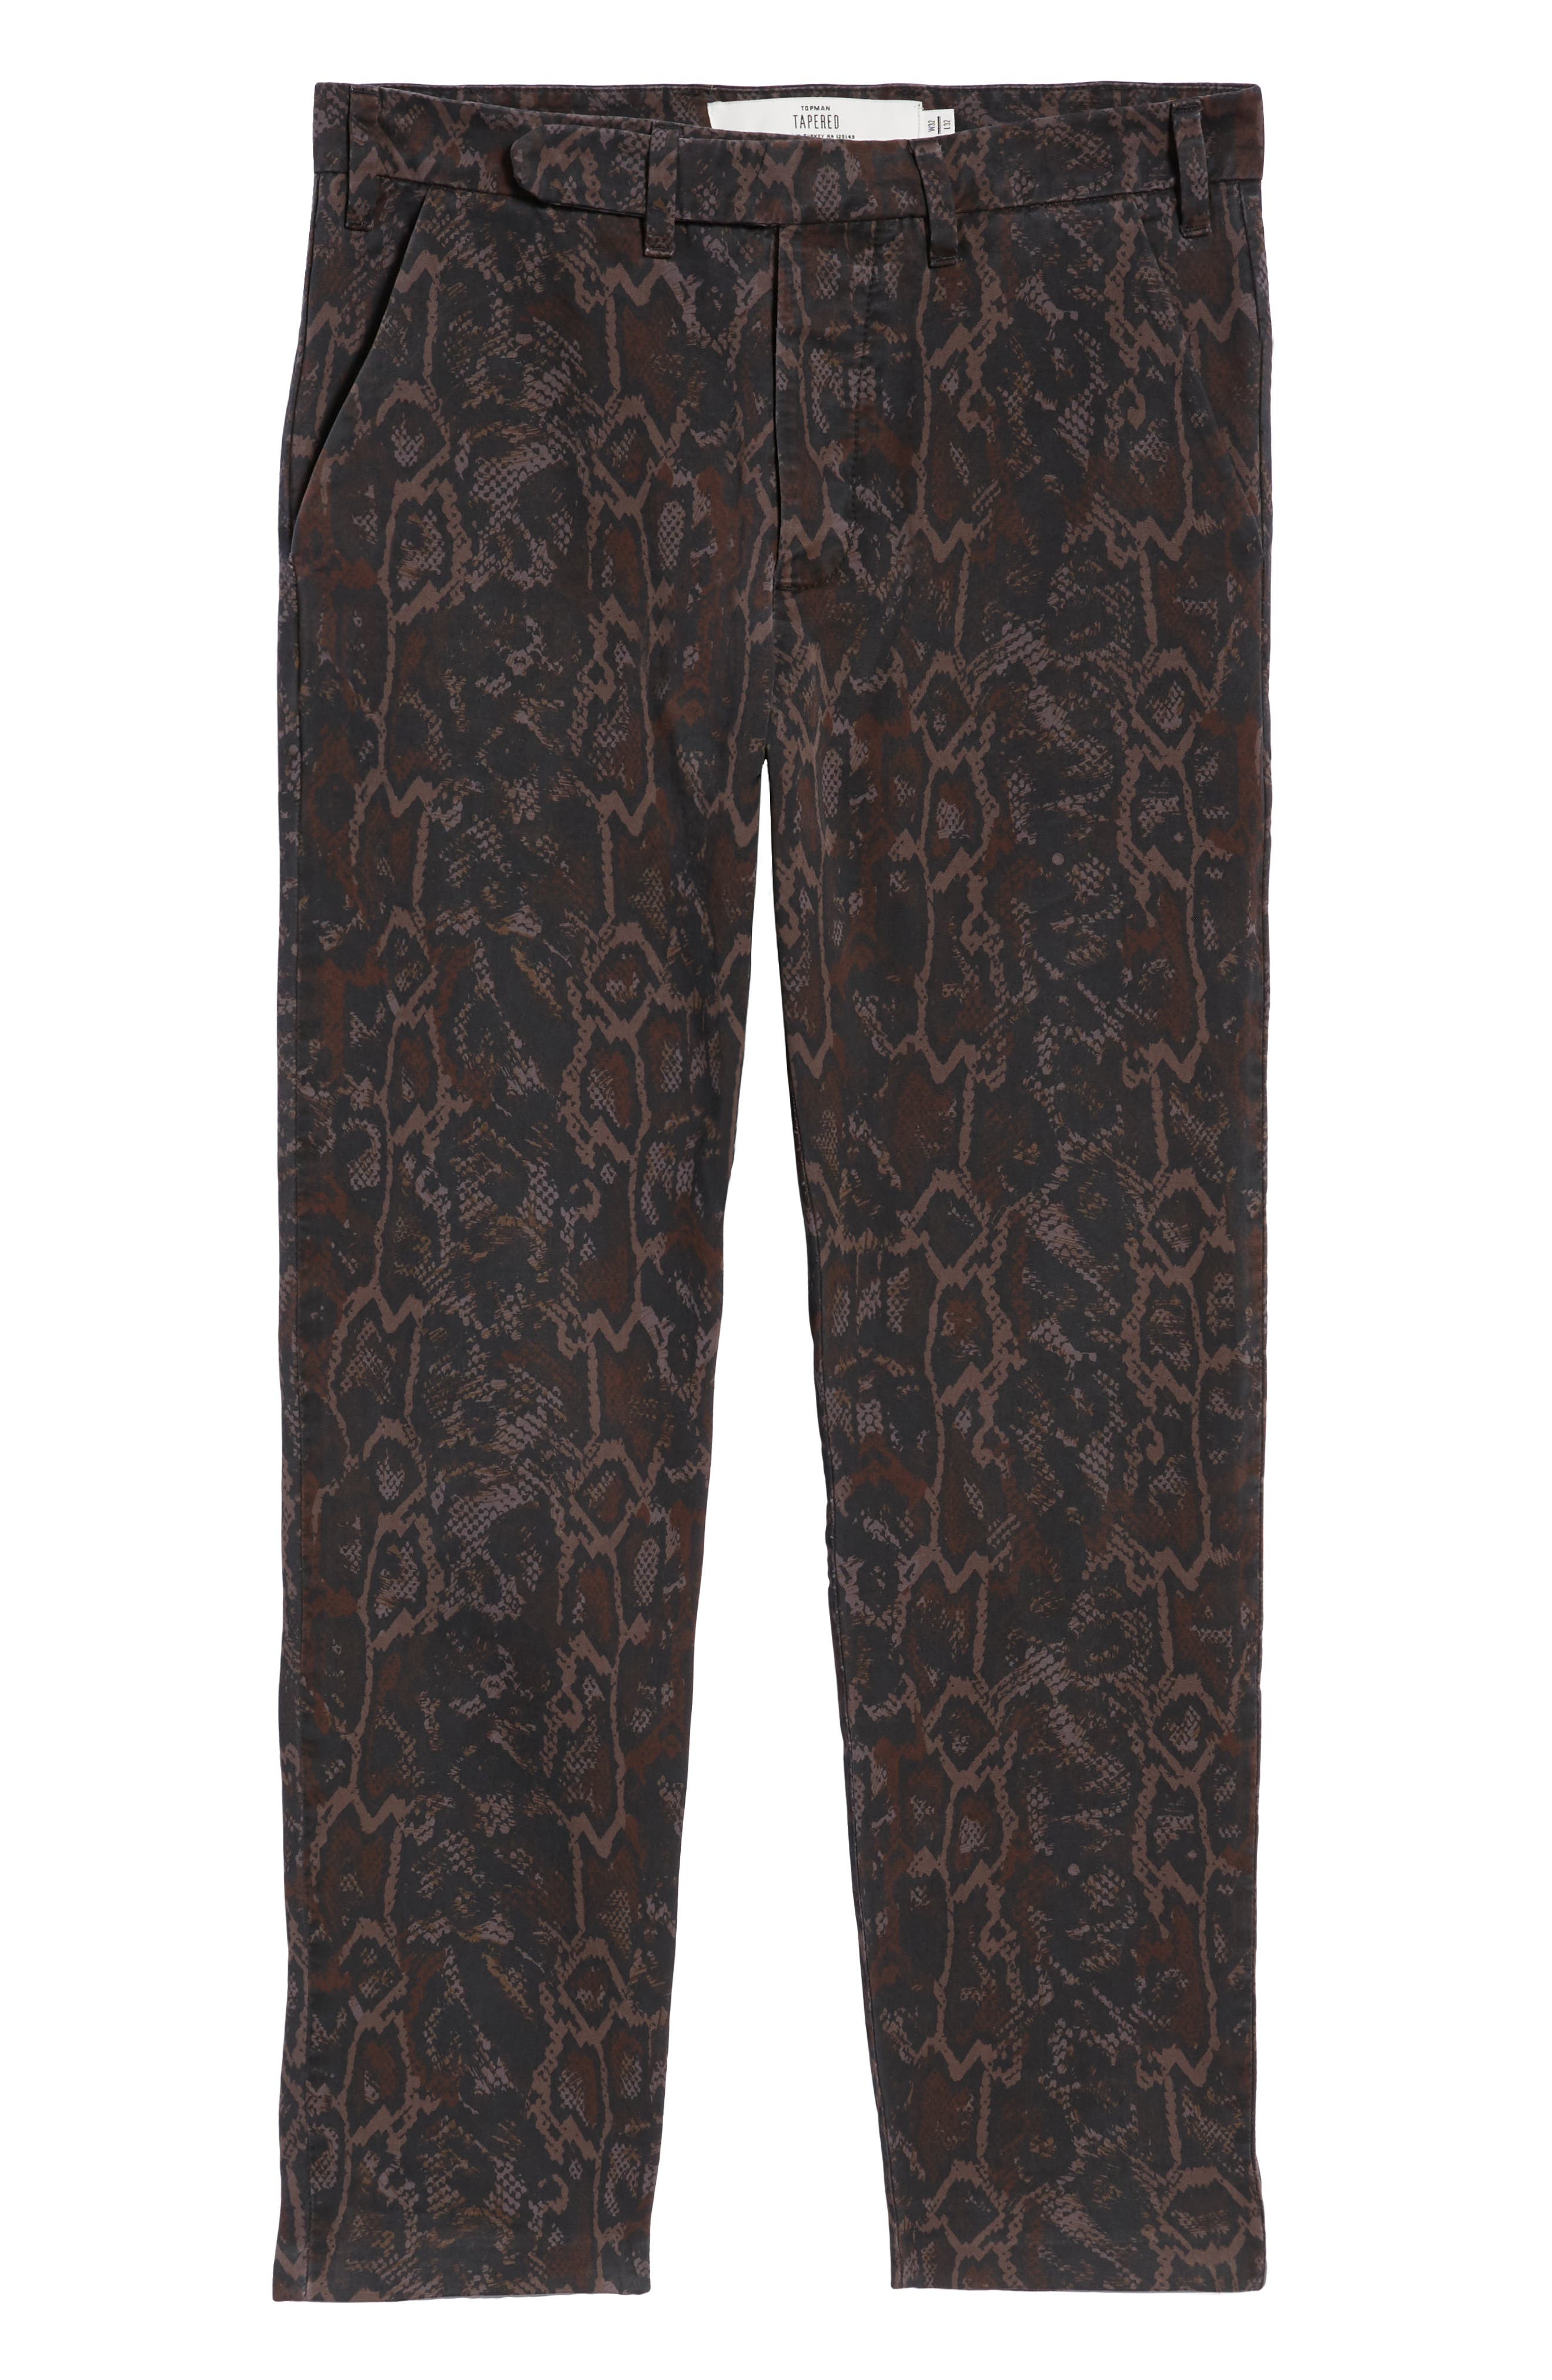 Tapered Fit Snakeskin Print Pants,                             Alternate thumbnail 6, color,                             GOLD MULTI